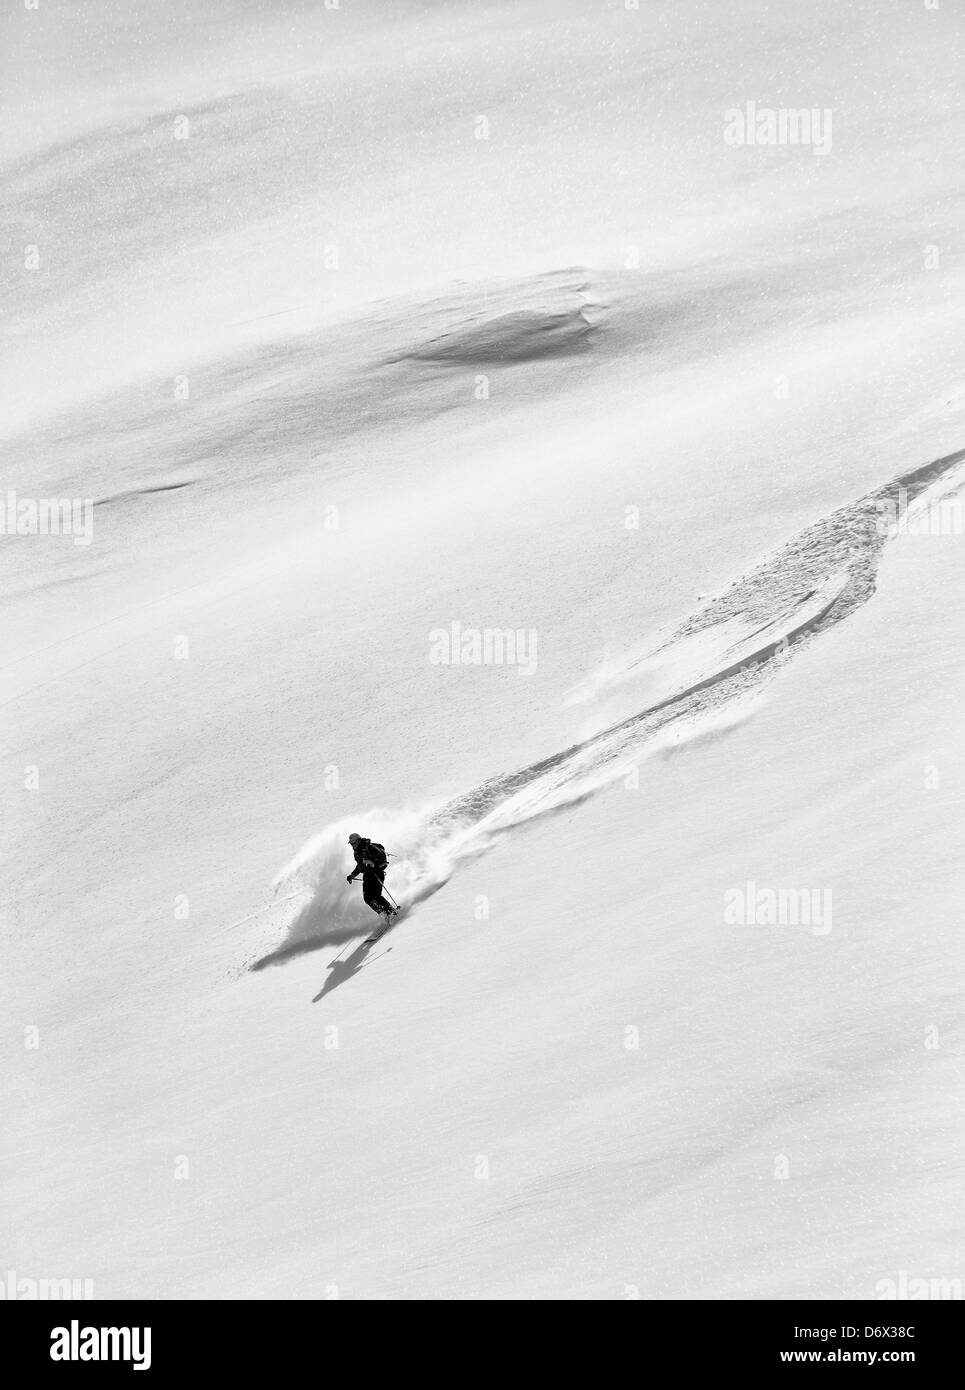 Off piste skiing in Arolla - Stock Image